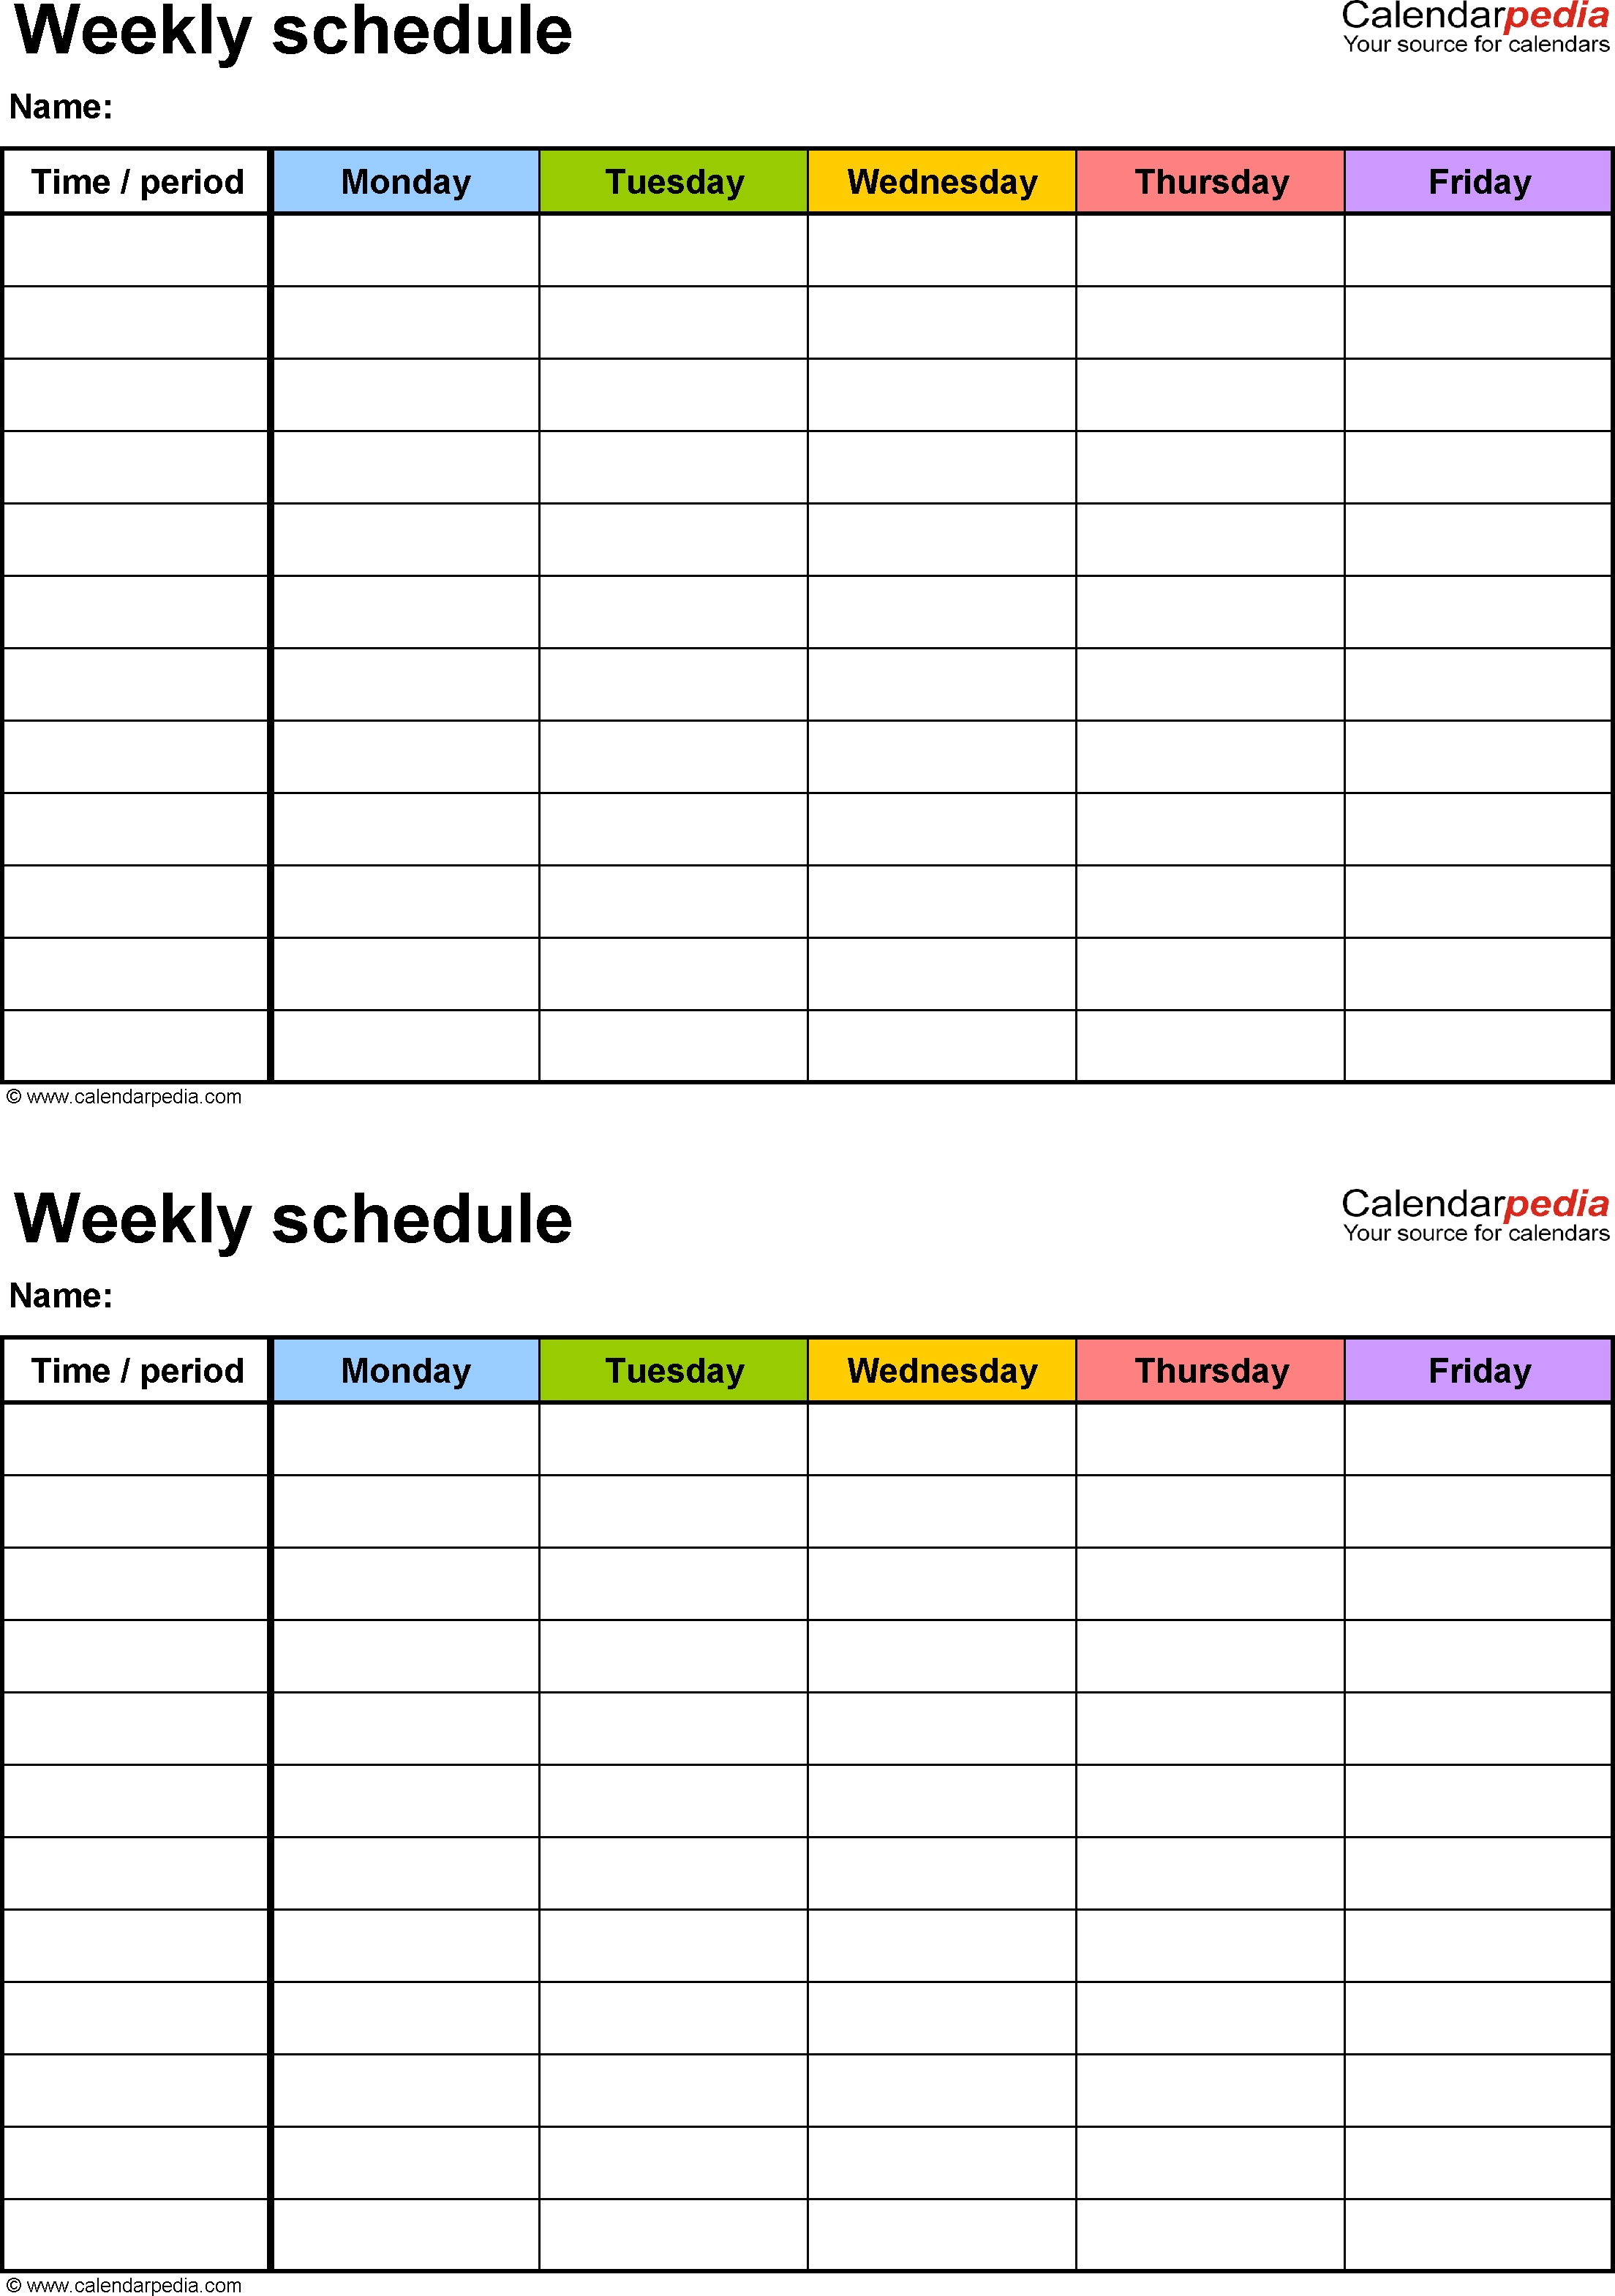 Template Monday To Friday   Calendar Template Printable Schedule Sheet Monday To Friday